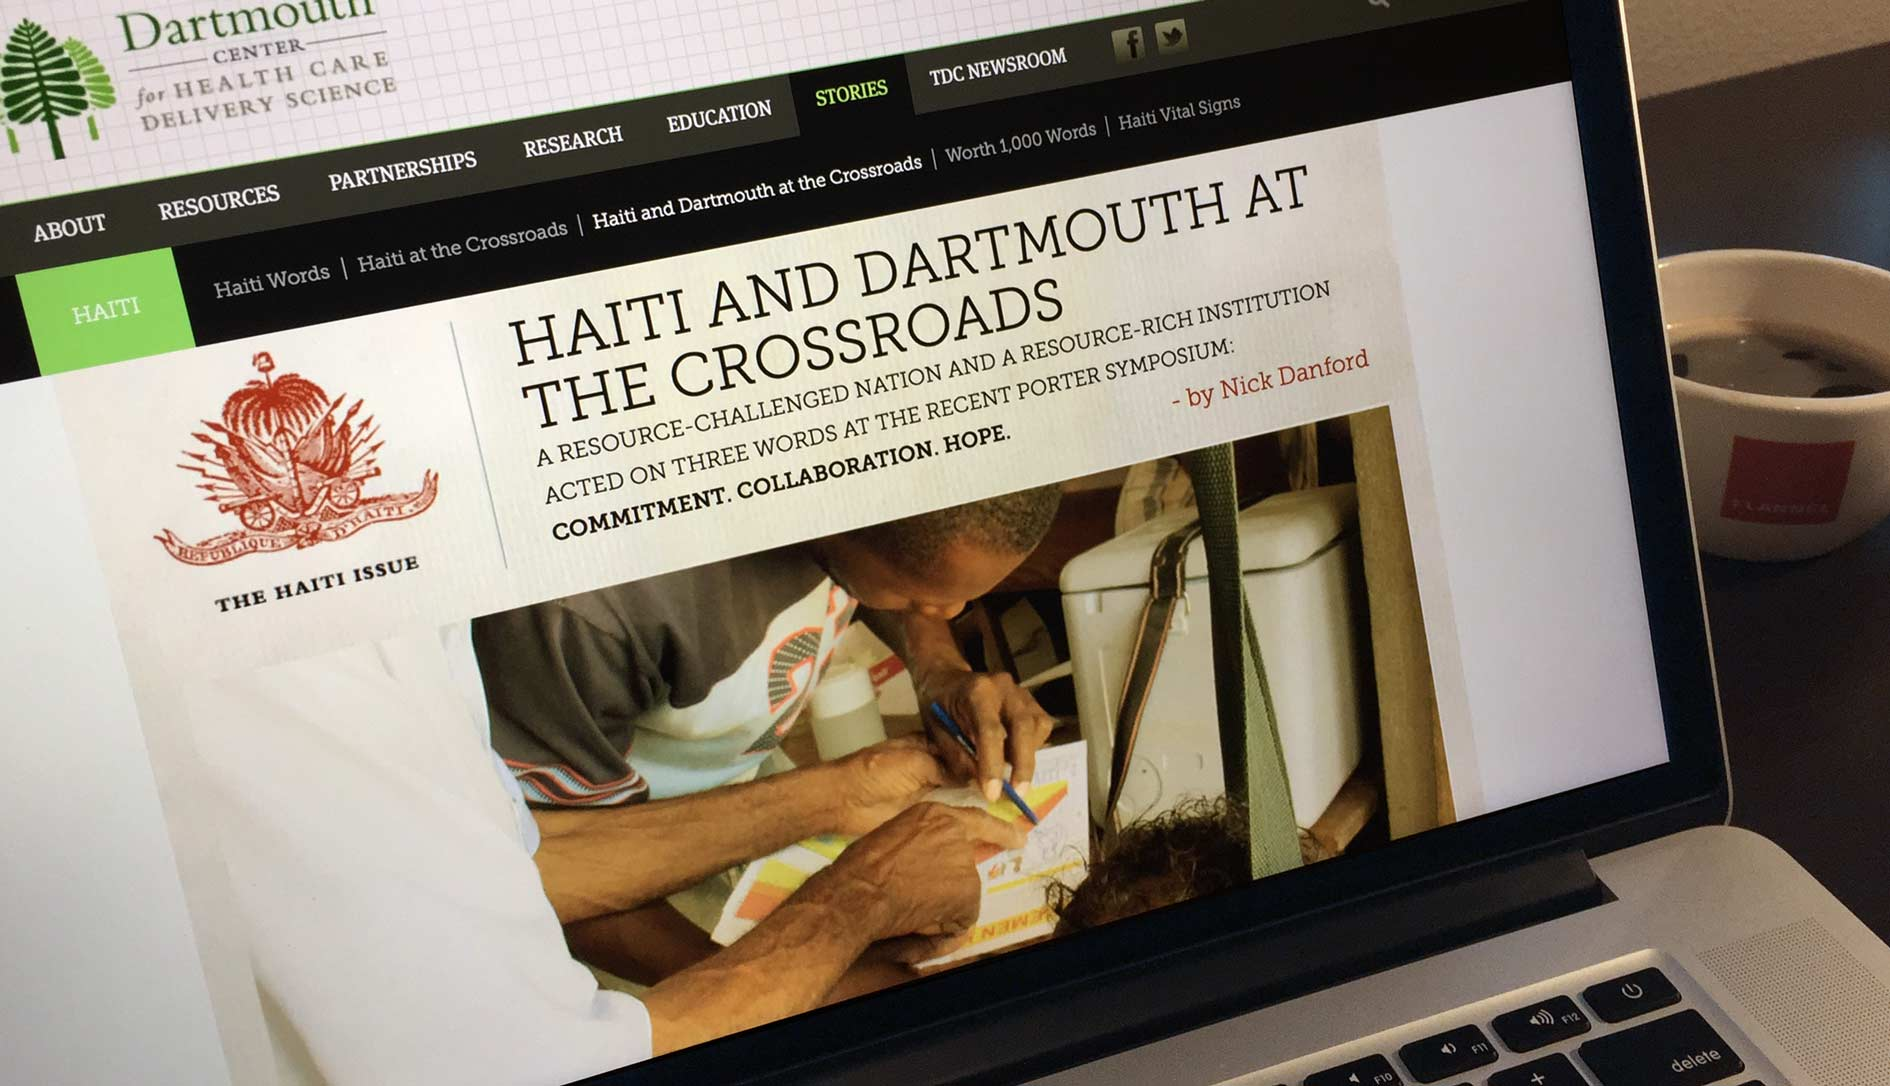 TDC story on Haiti and Dartmouth